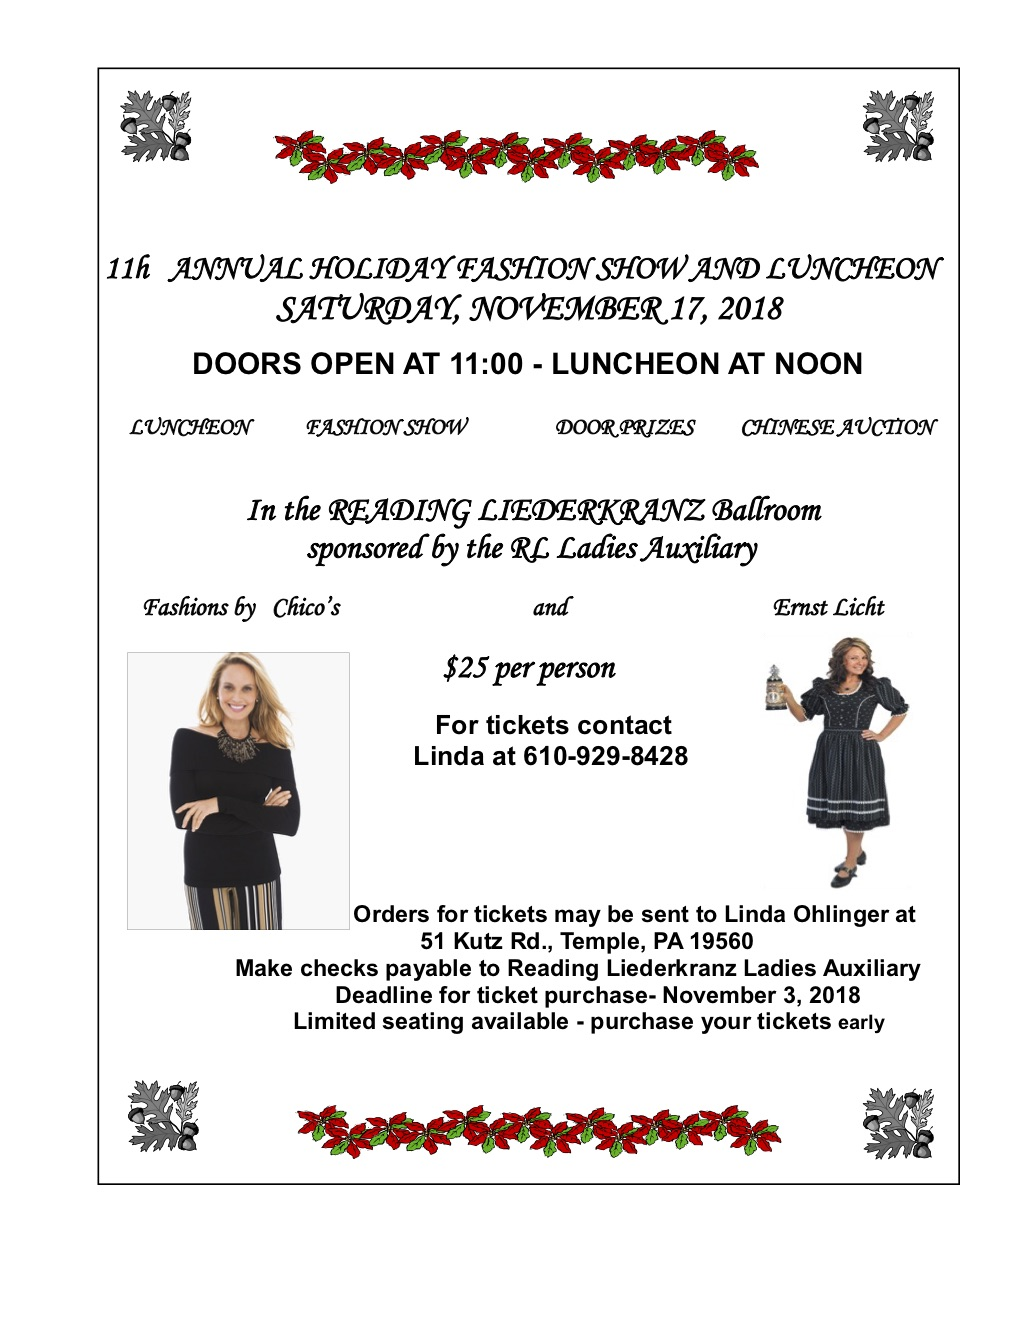 ladies auxiliary 11th annual holiday fashion show luncheon the reading liederkranz